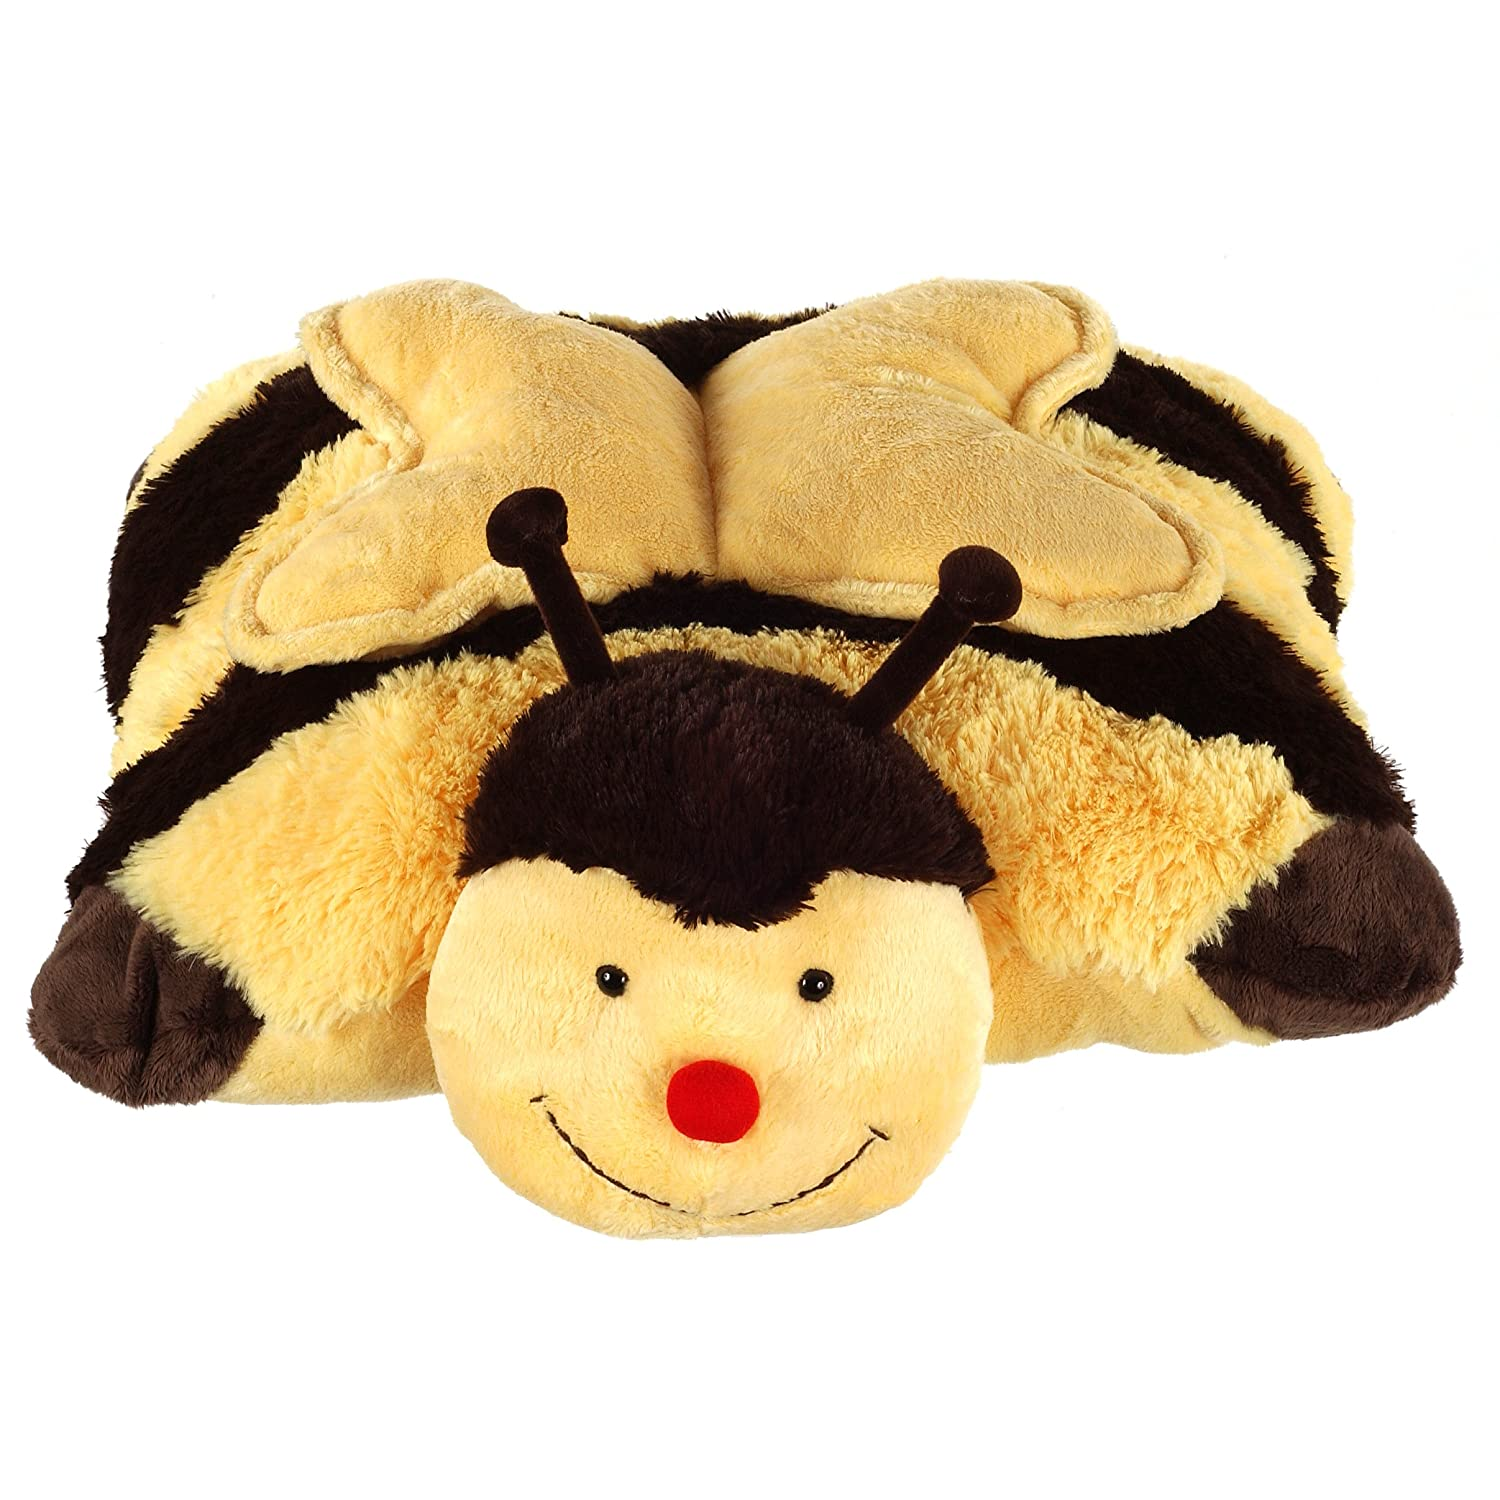 Brand Authentic My Pillow Pets Large 18